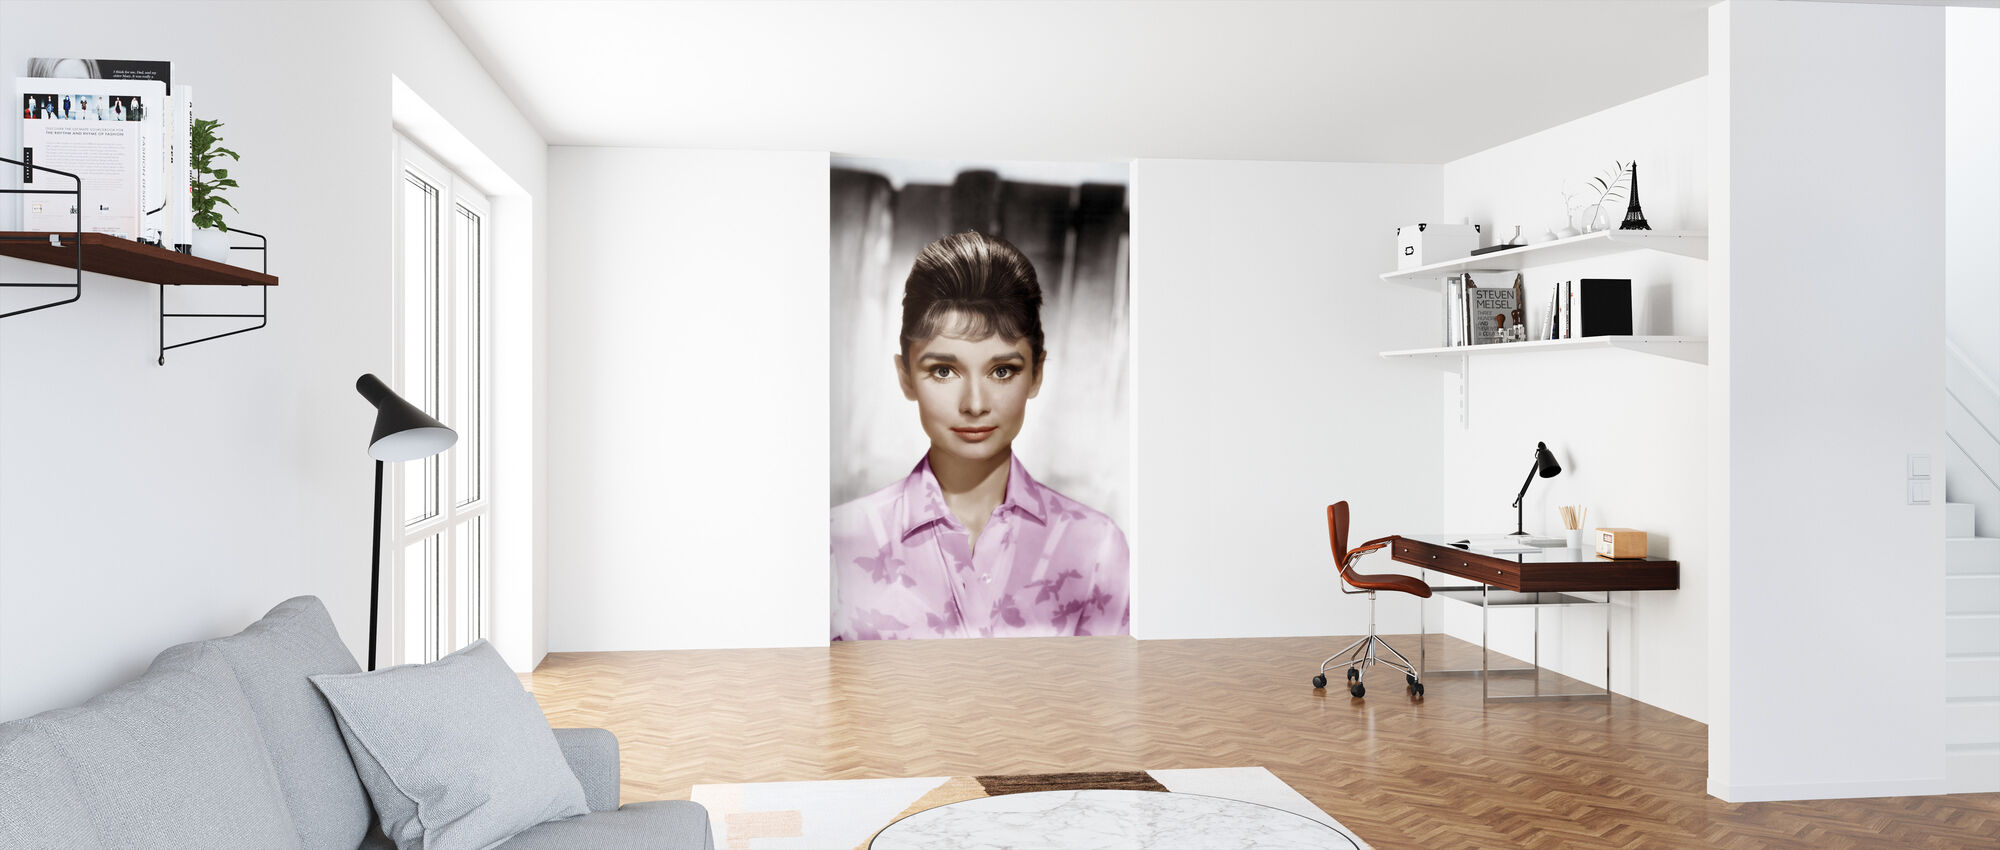 Aud - Wallpaper - Office